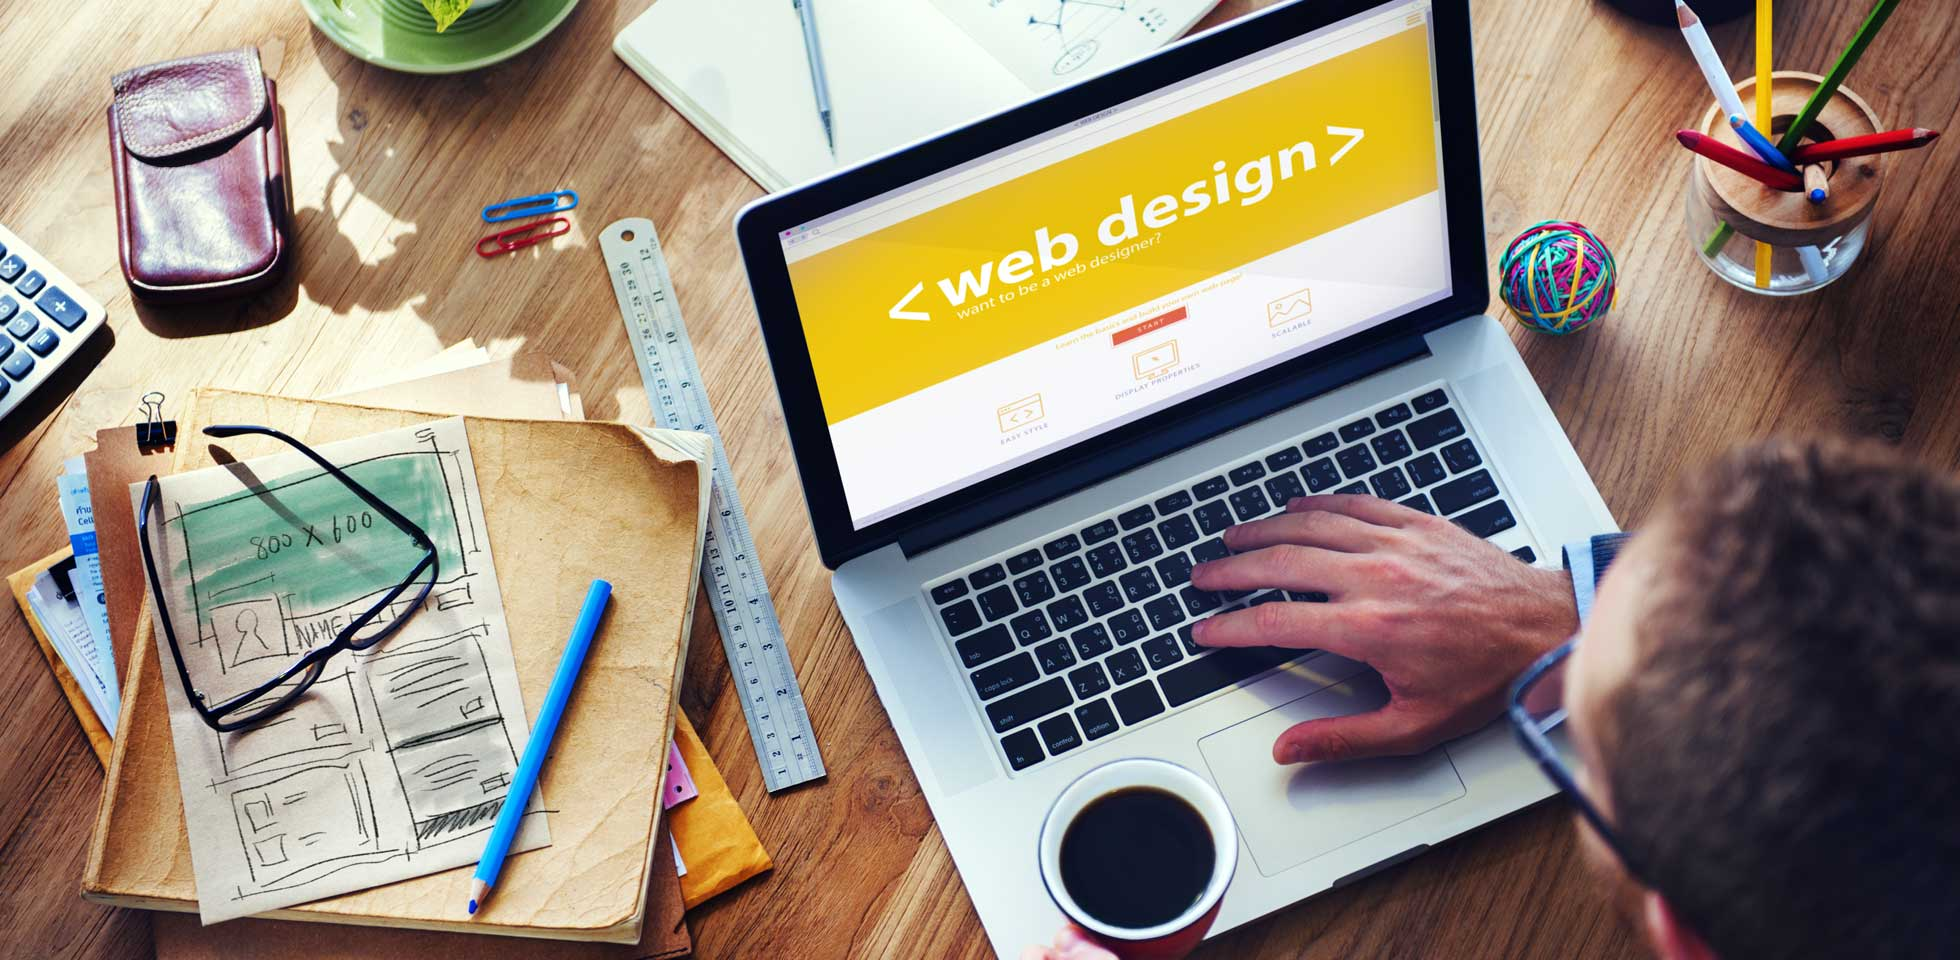 Web Design Services | Fix My Web - Web Design Sydney